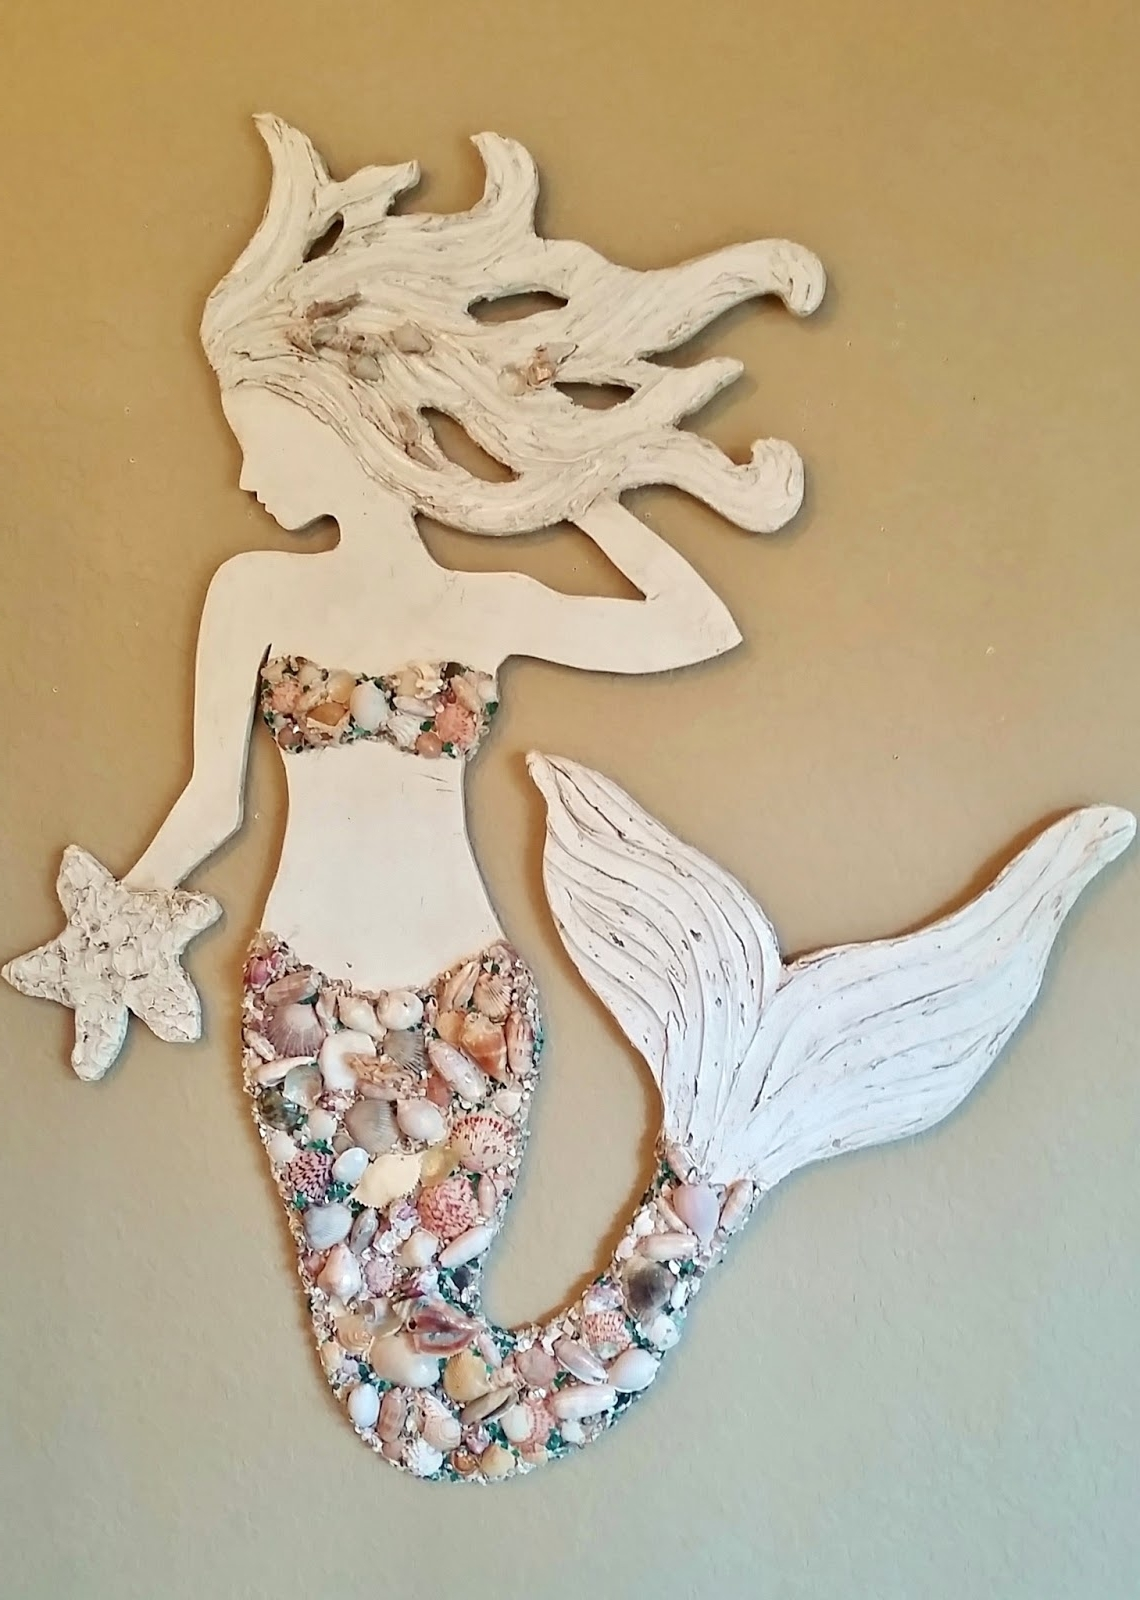 Wall Art With Seashells Pertaining To Most Current Mermaid Wall Art New Design, Wood Mermaid Vertical Style Beach Art (View 4 of 15)